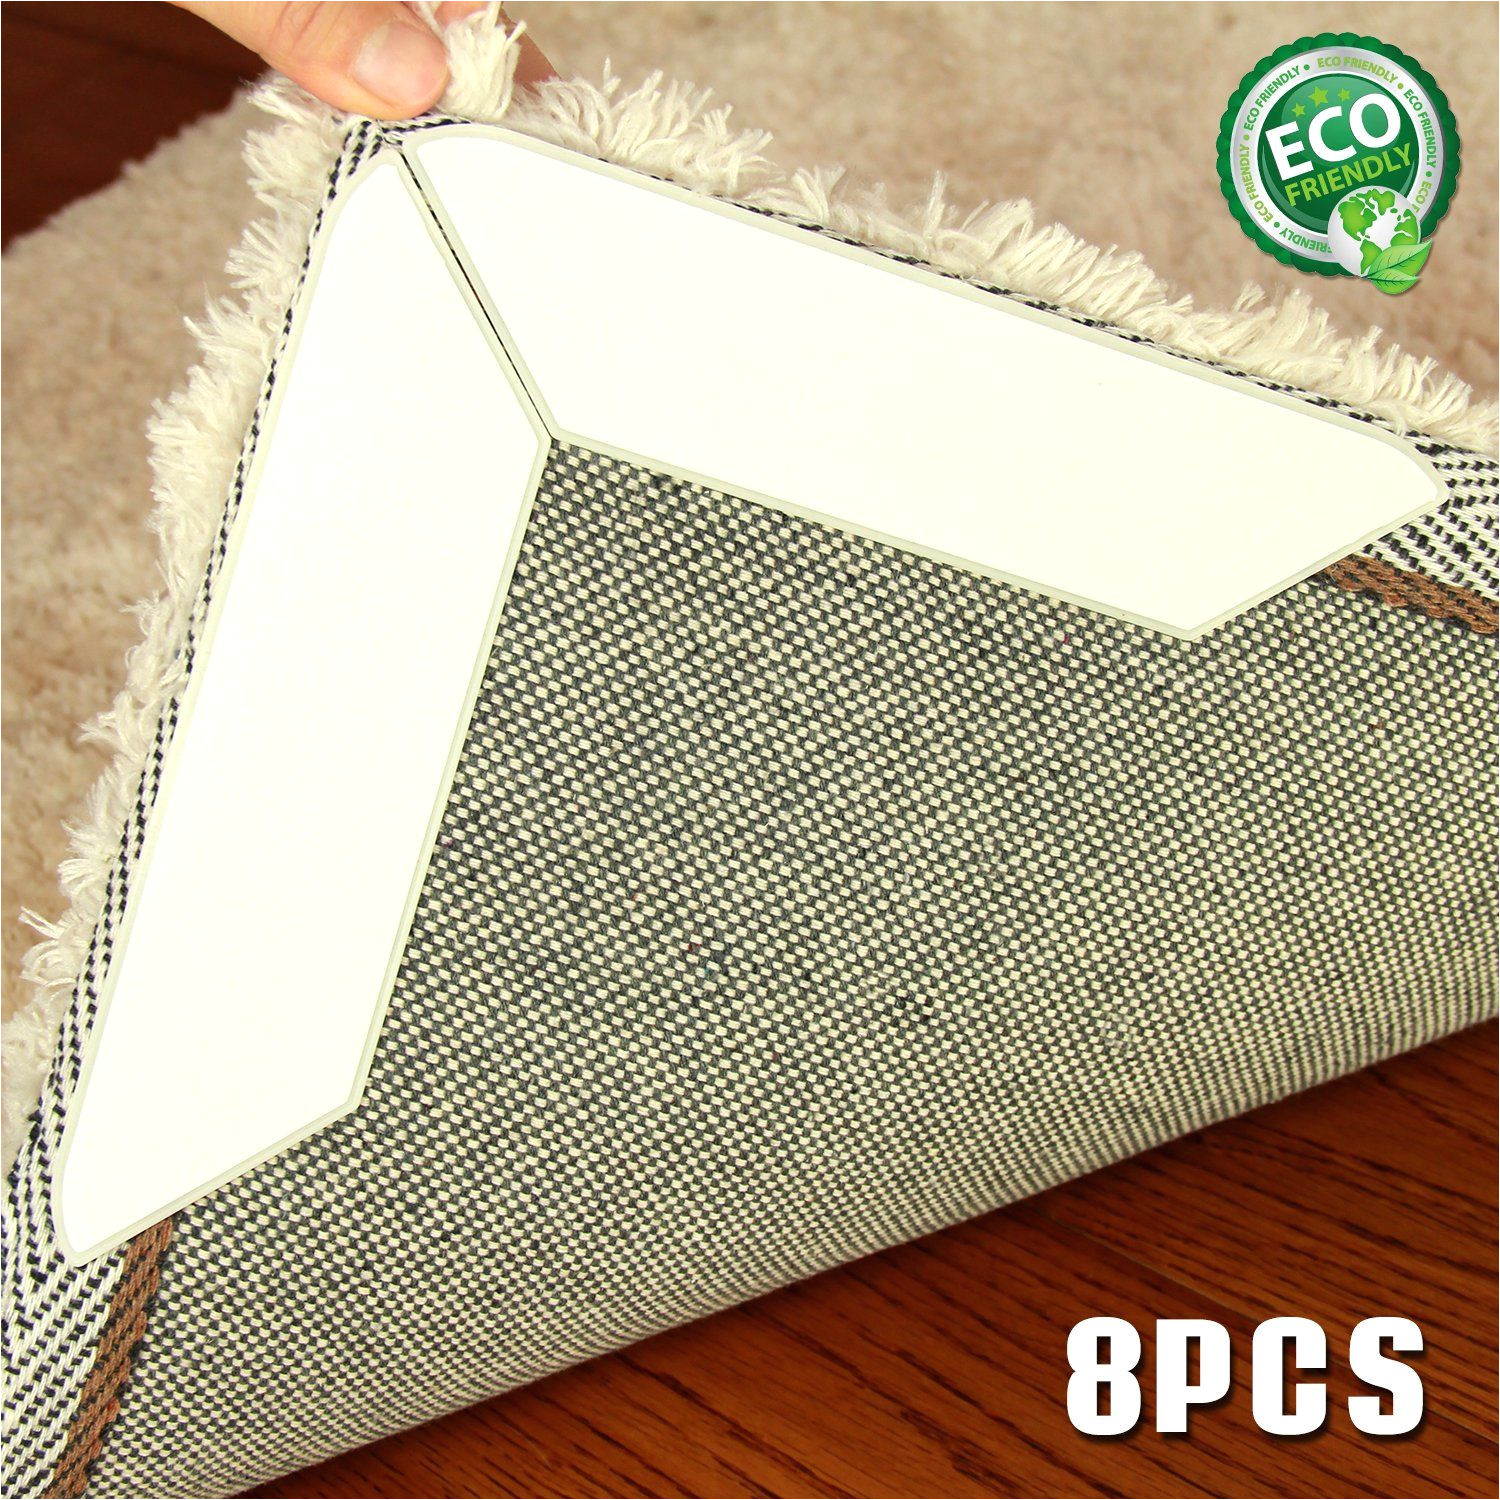 flatten carpet corners and stop slipping use non residue gel ideal alternative to rug pad for wood and all